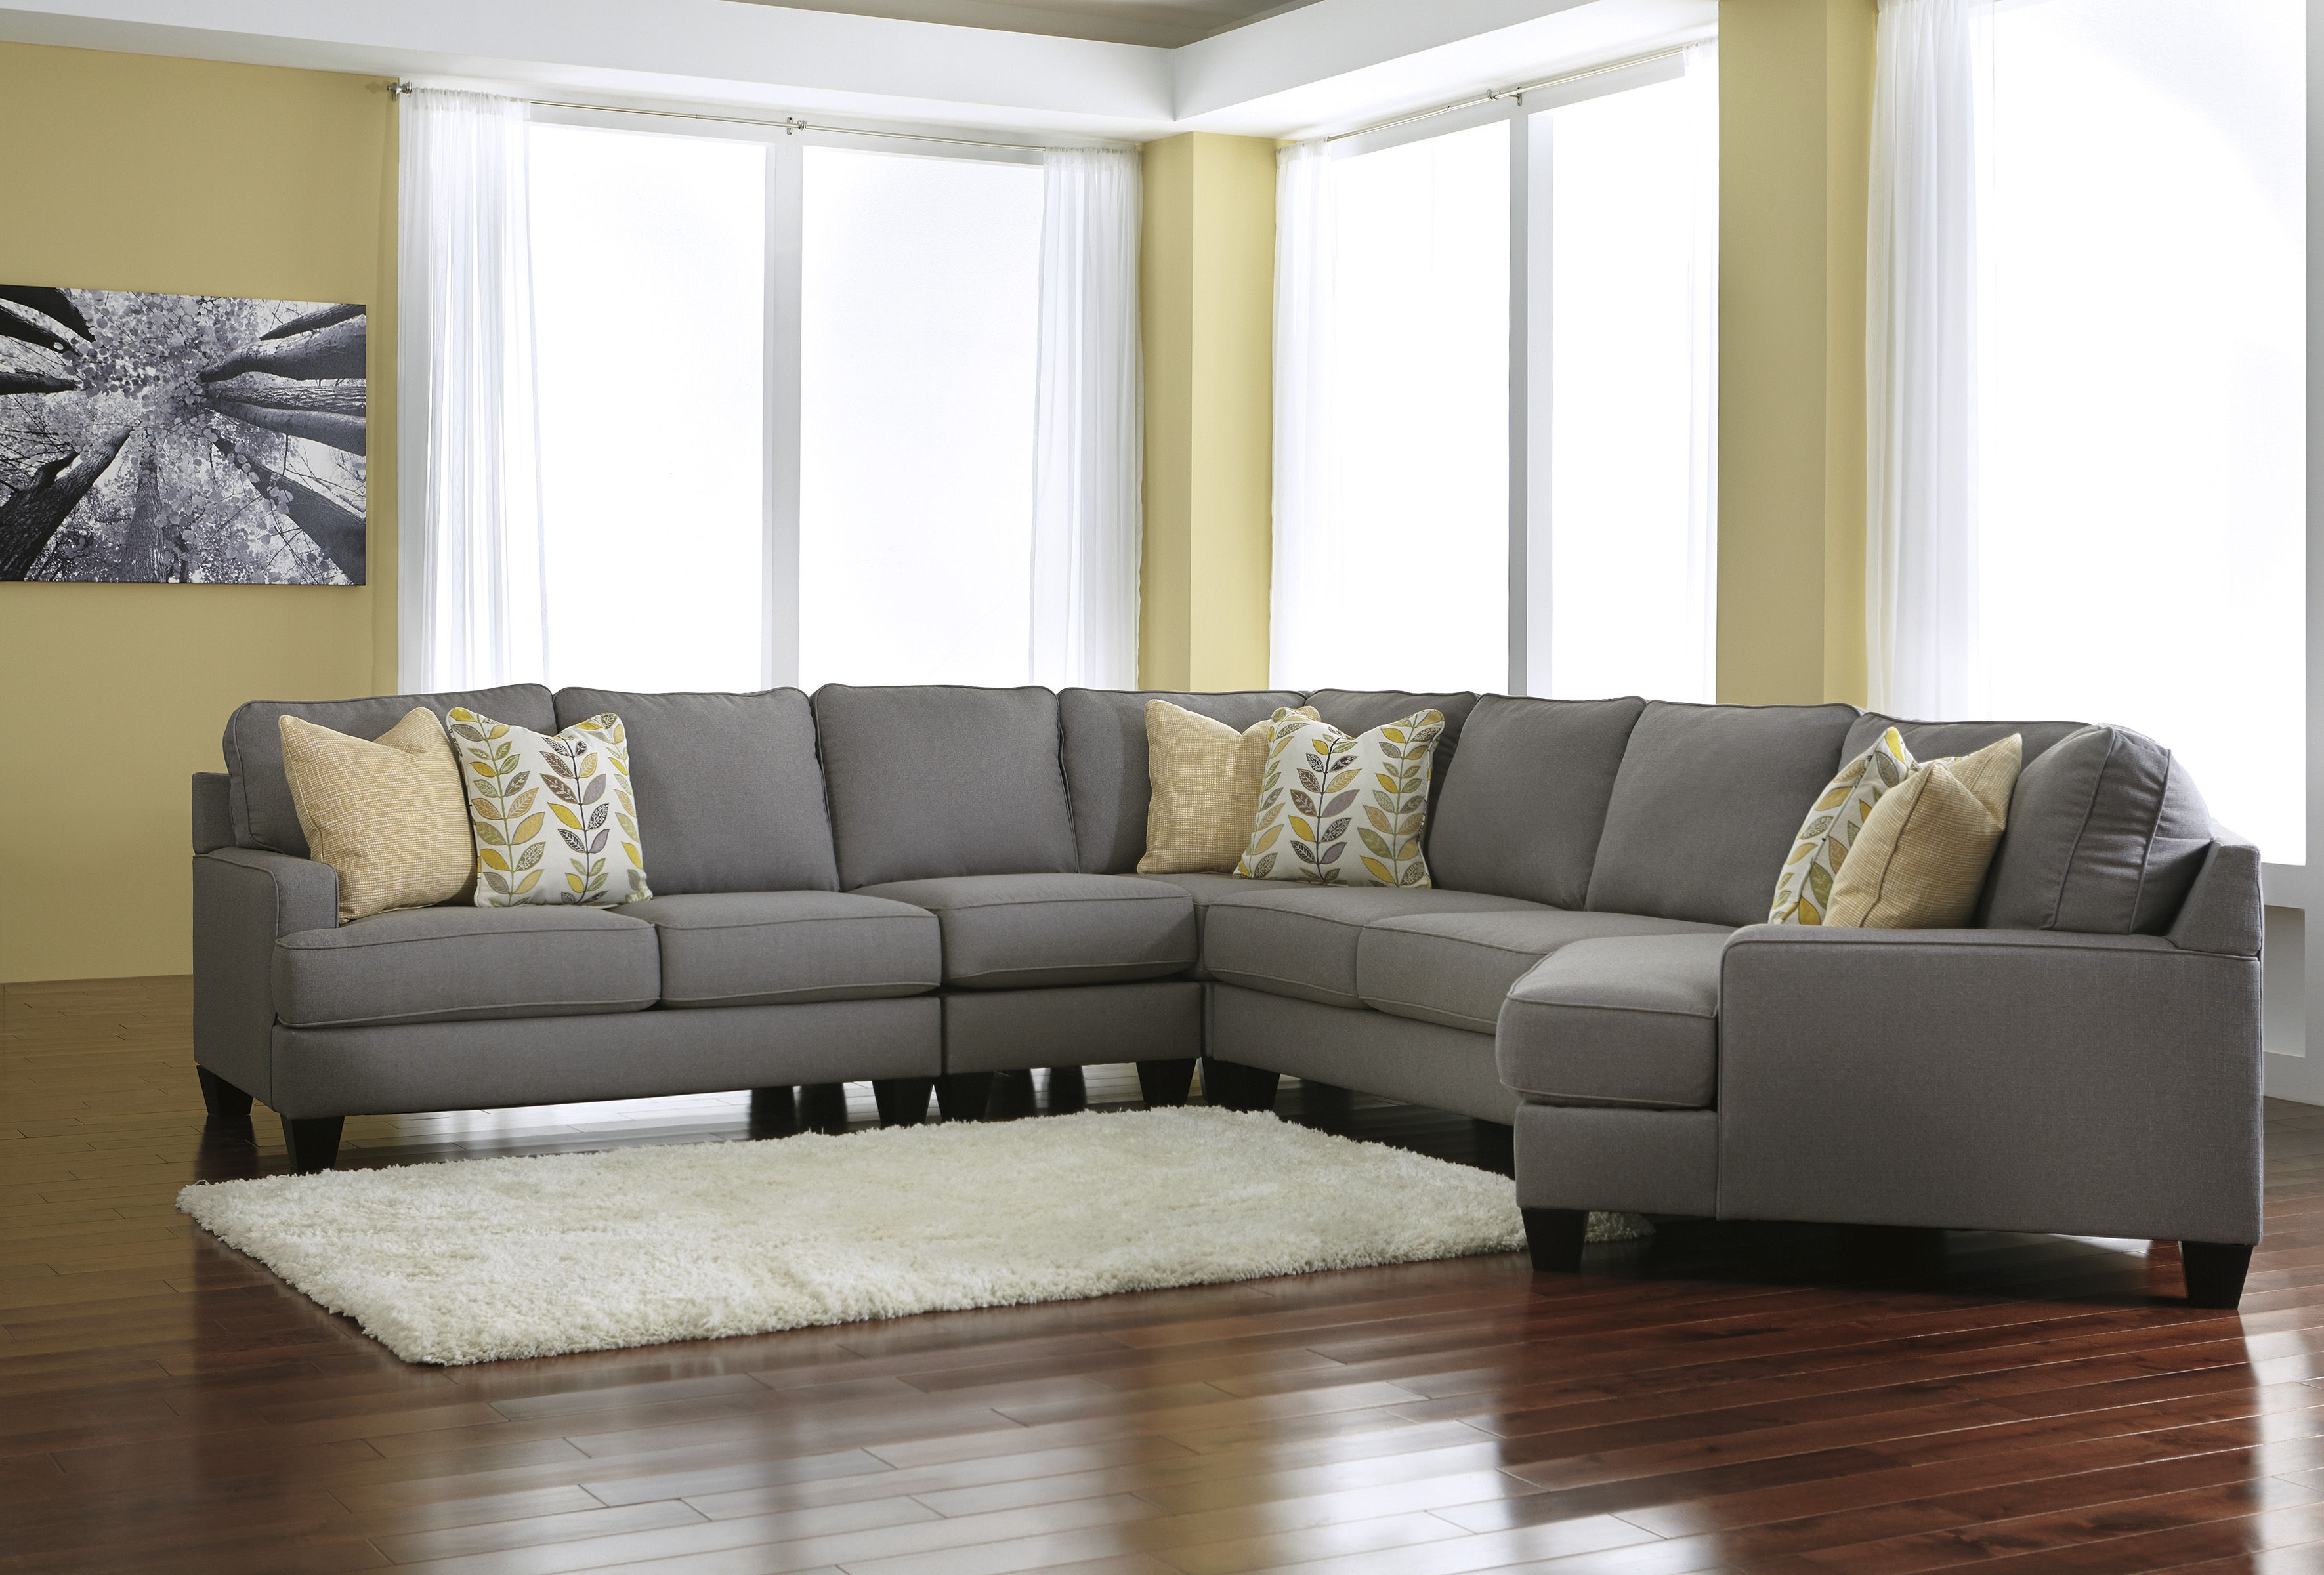 Chamberly Alloy Contemporary Wood Fabric RAF Cuddler 5pc